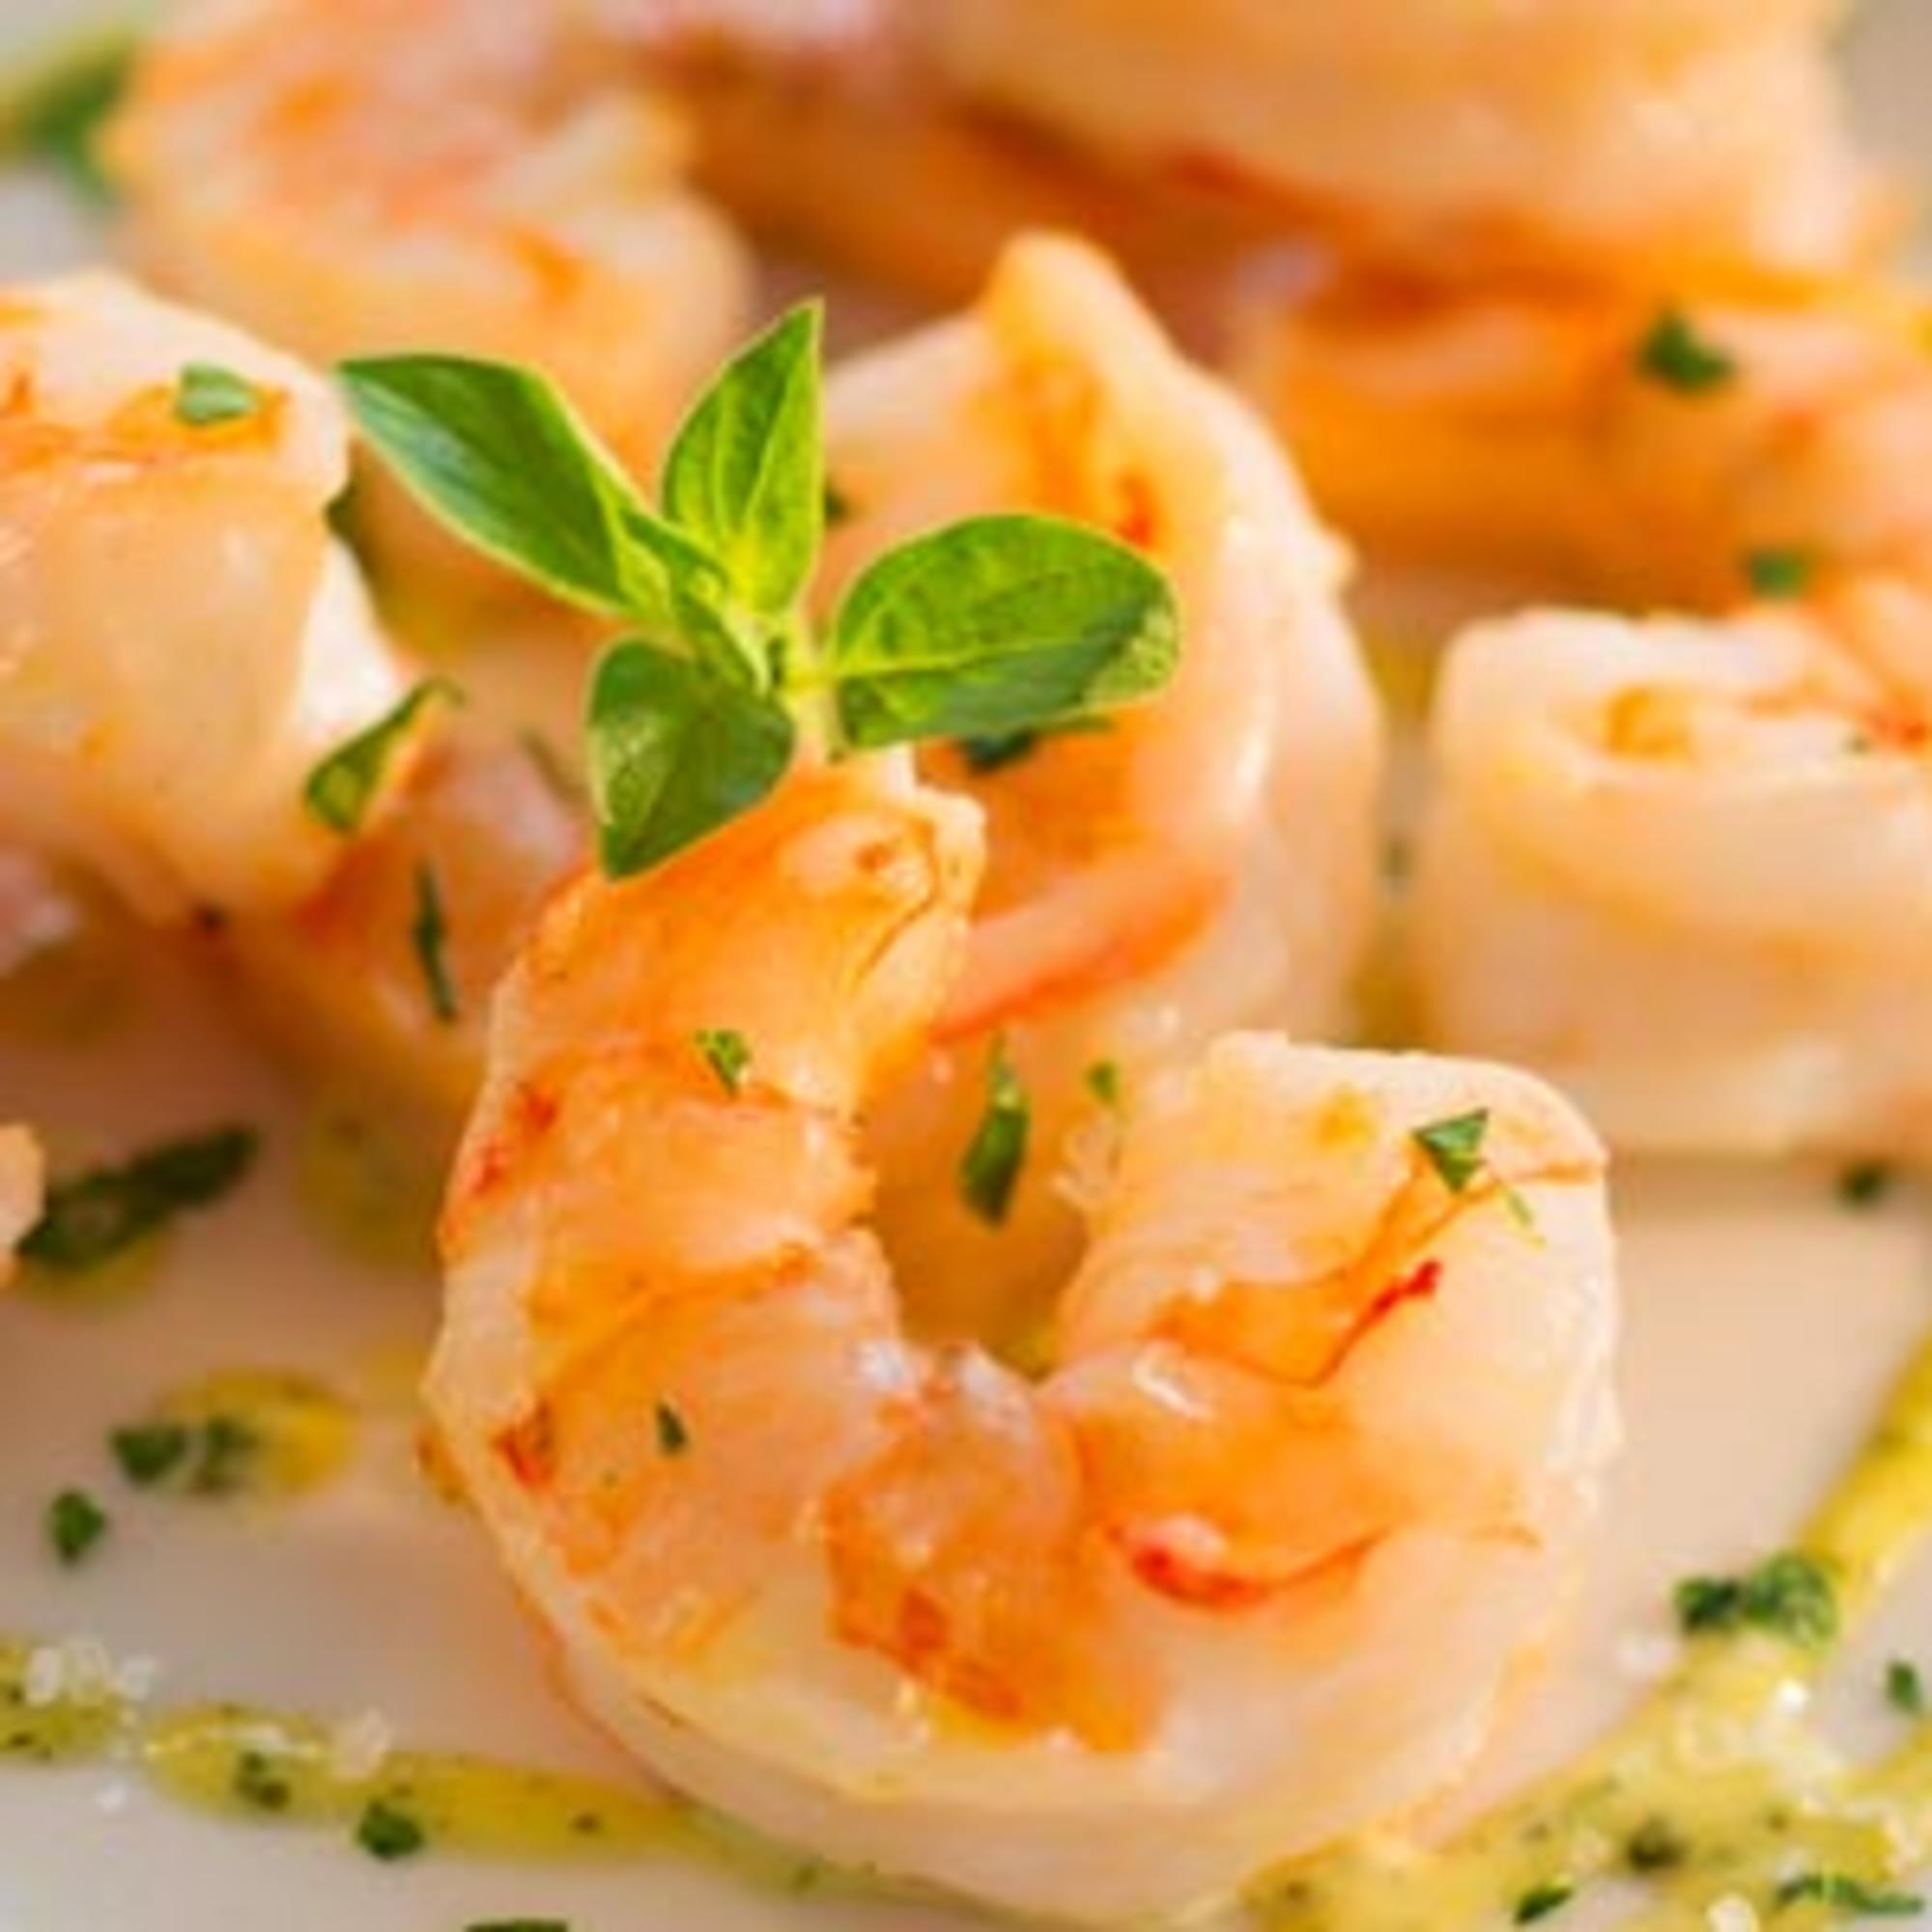 7 Things You Should Know About Shrimp